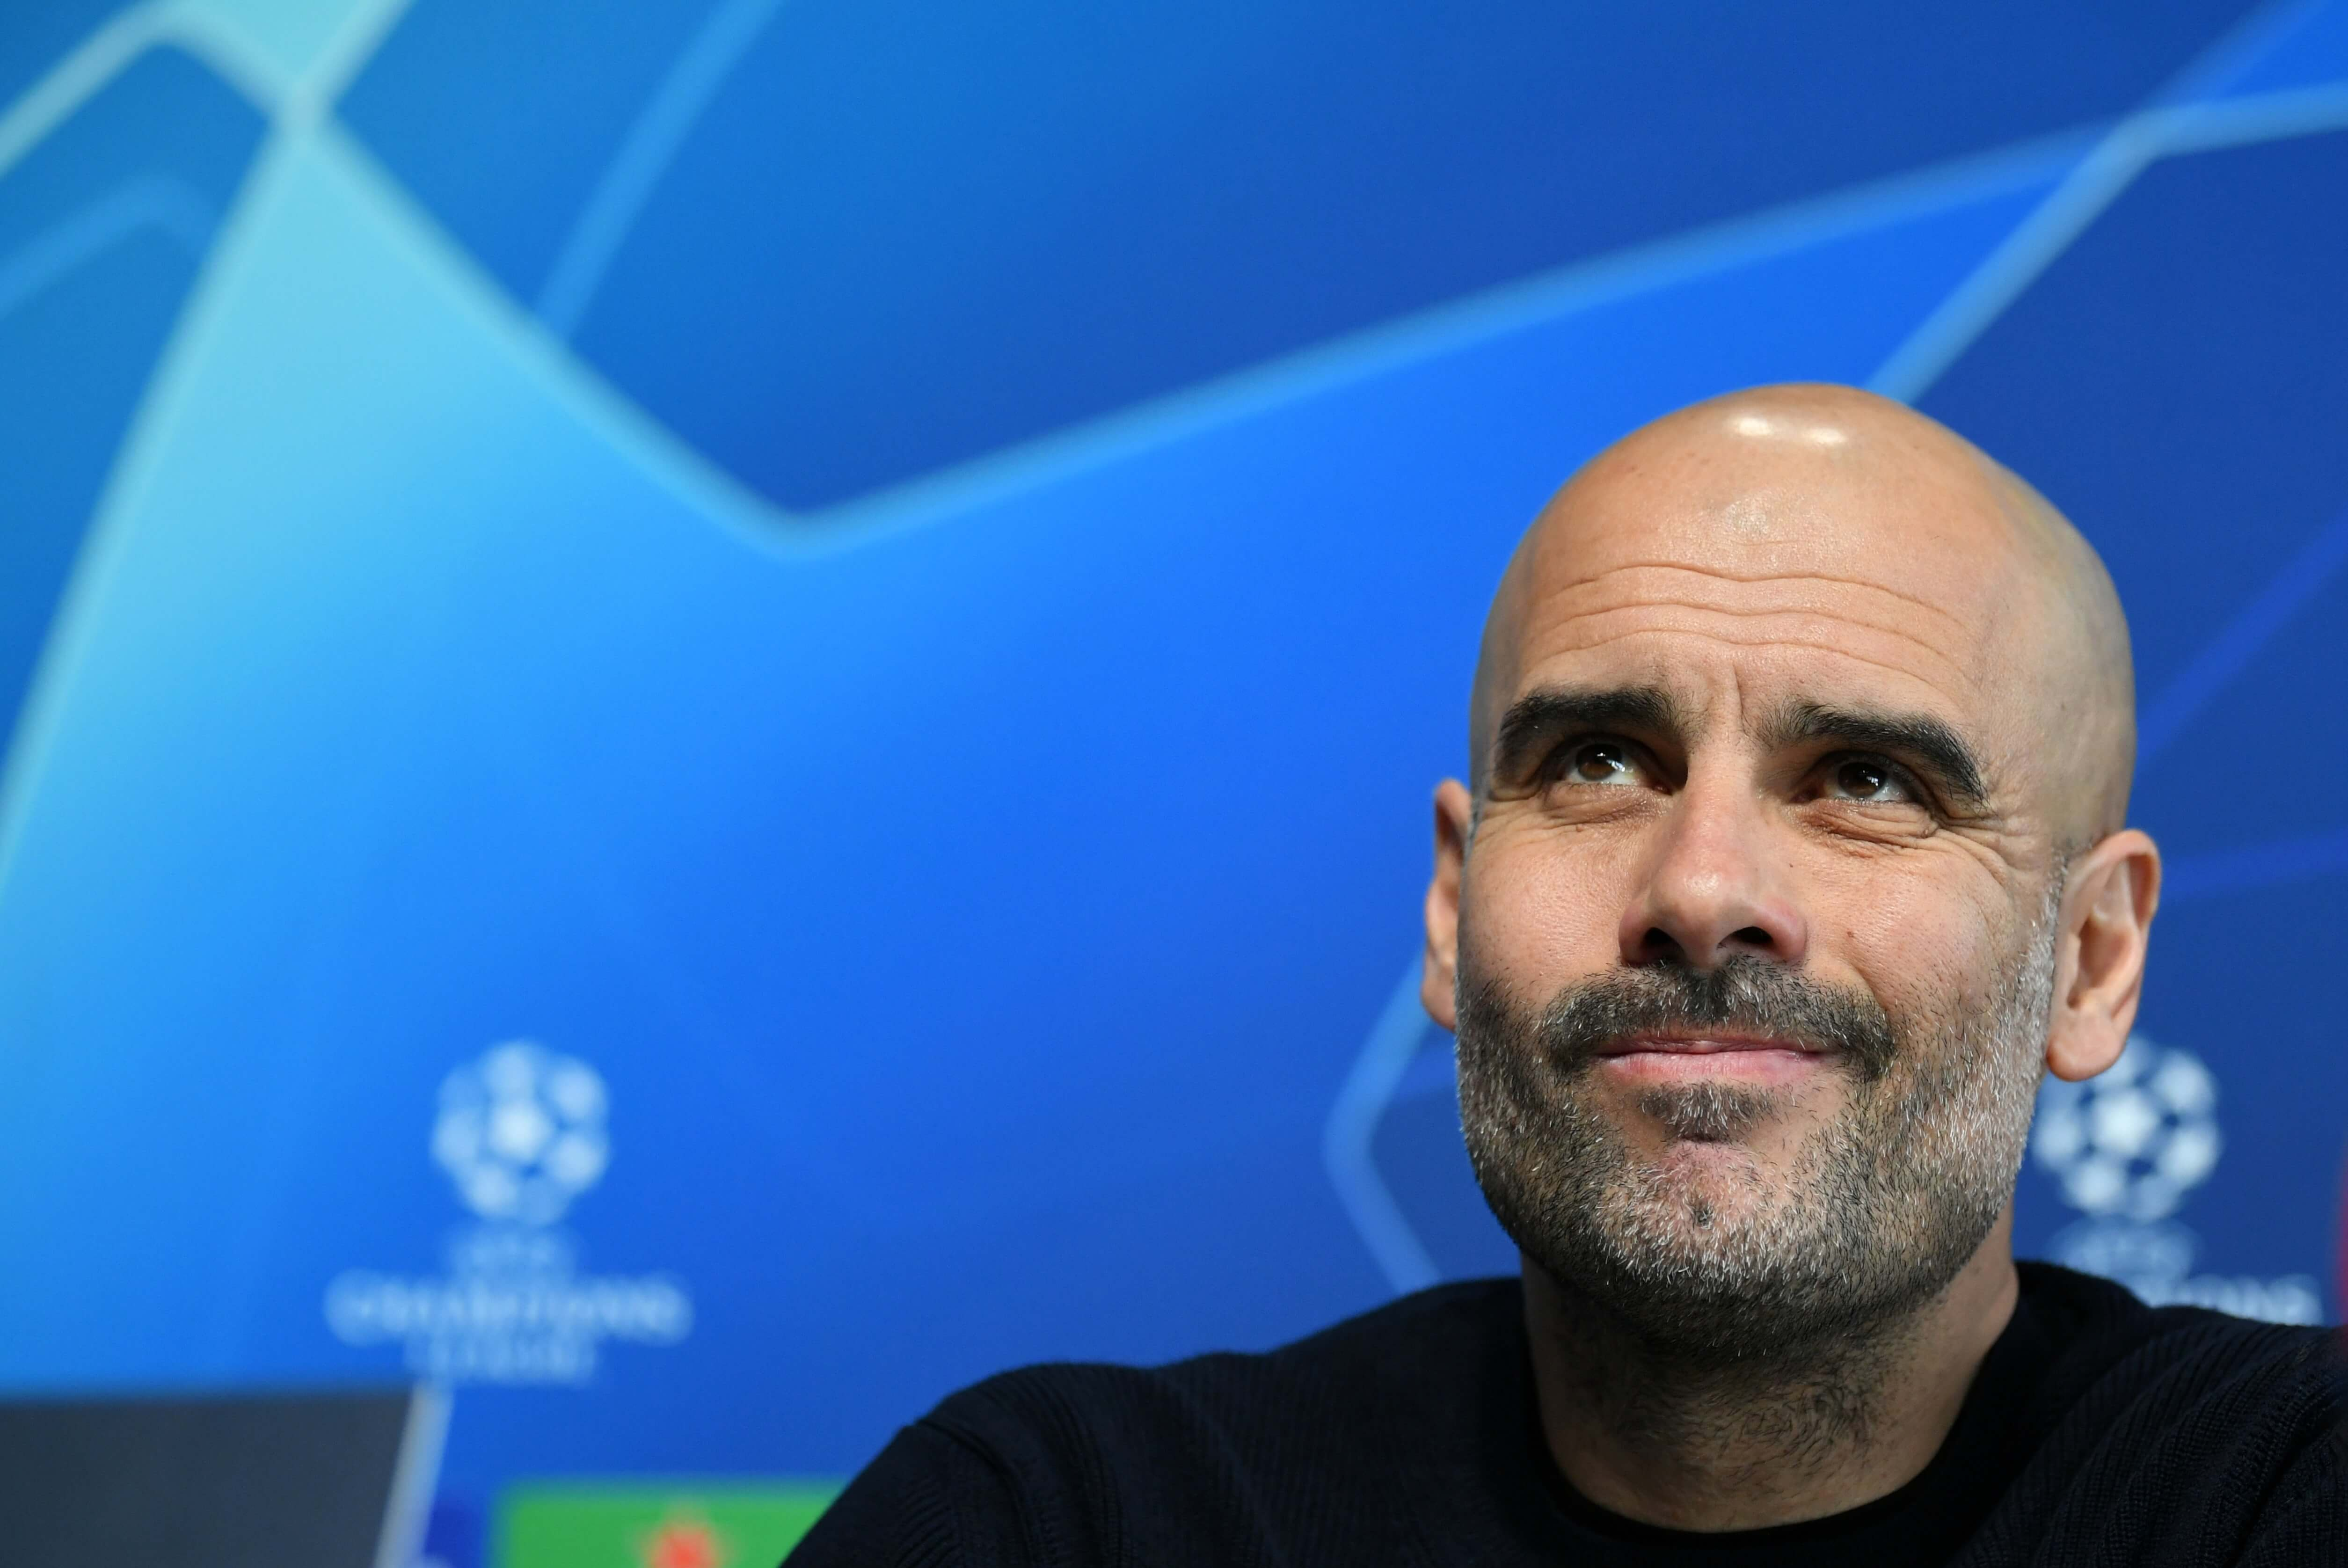 Manchester City v Real Madrid: 5 Things to Look Out For in the Champions League